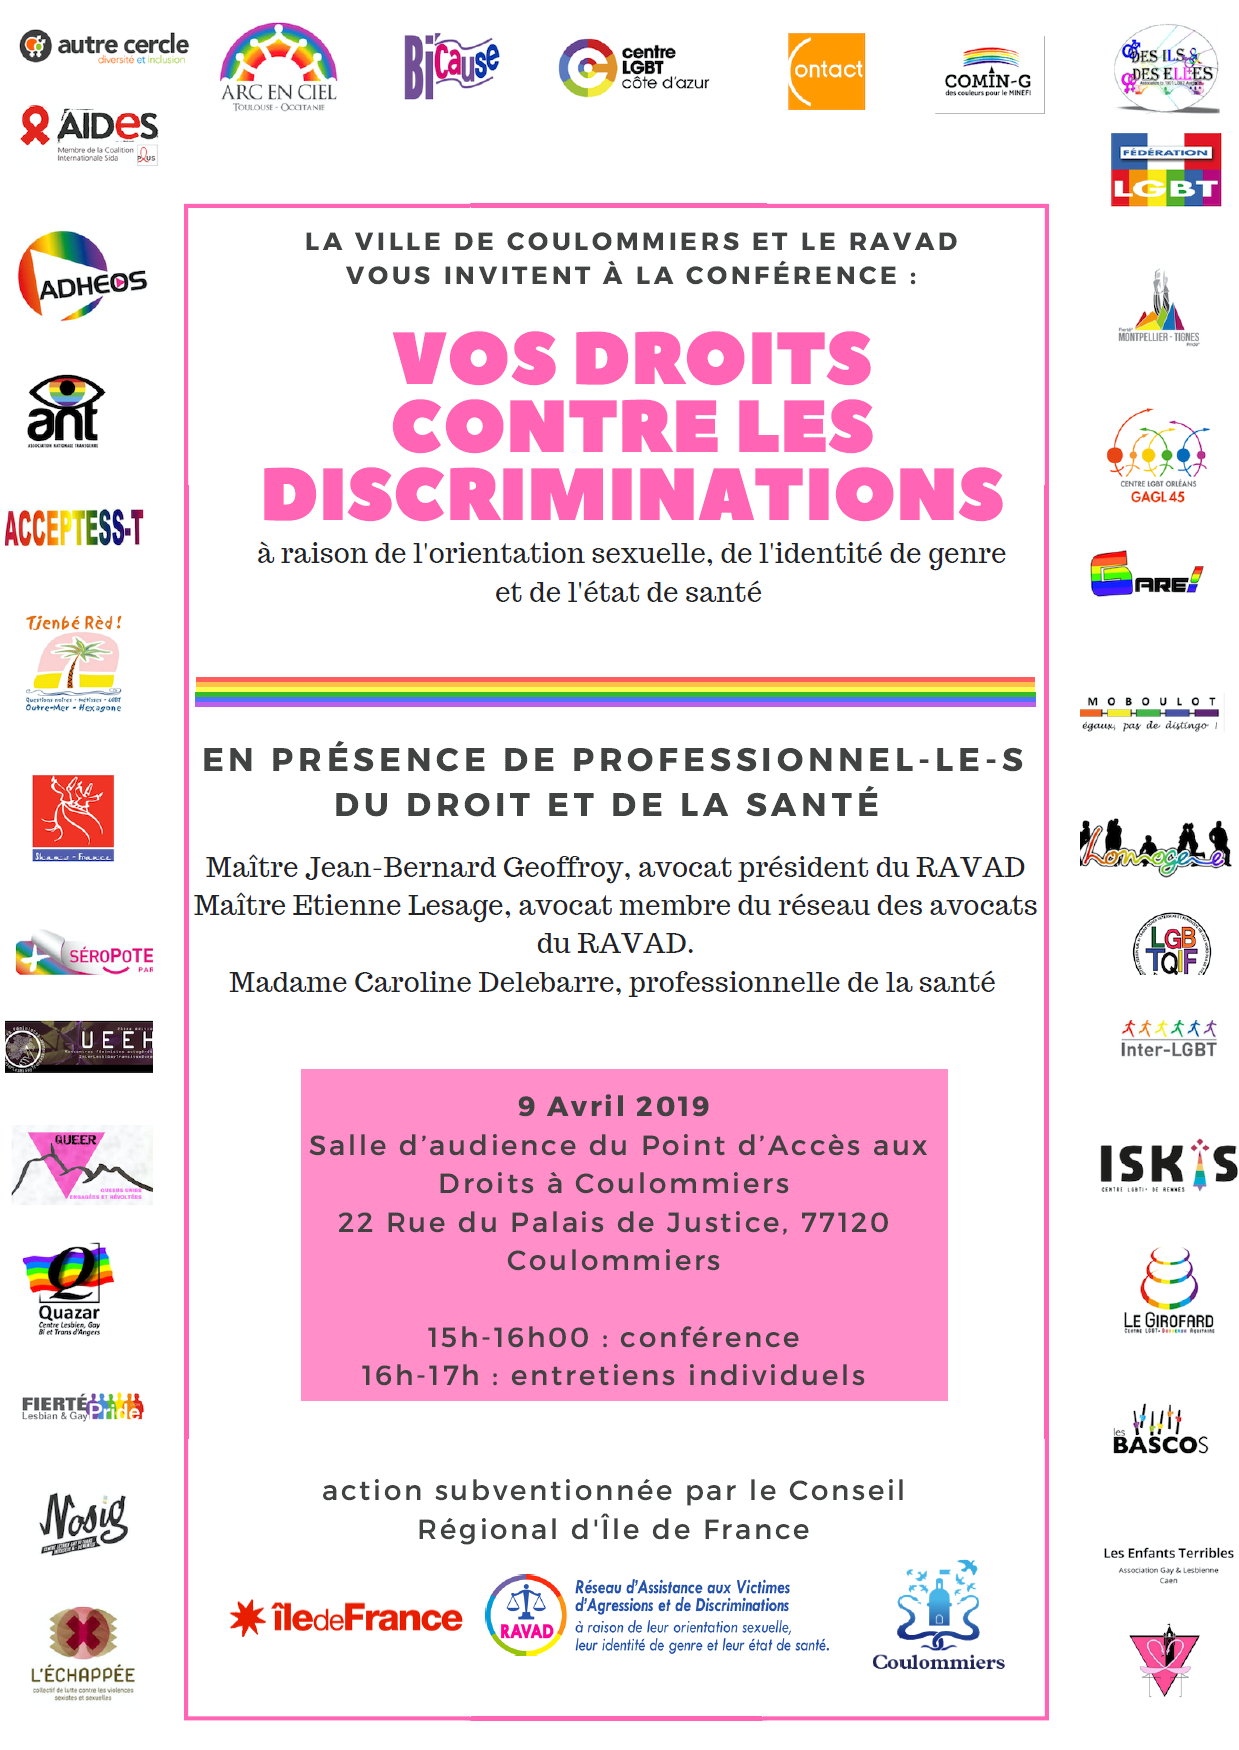 conference discrimination droit coulommiers